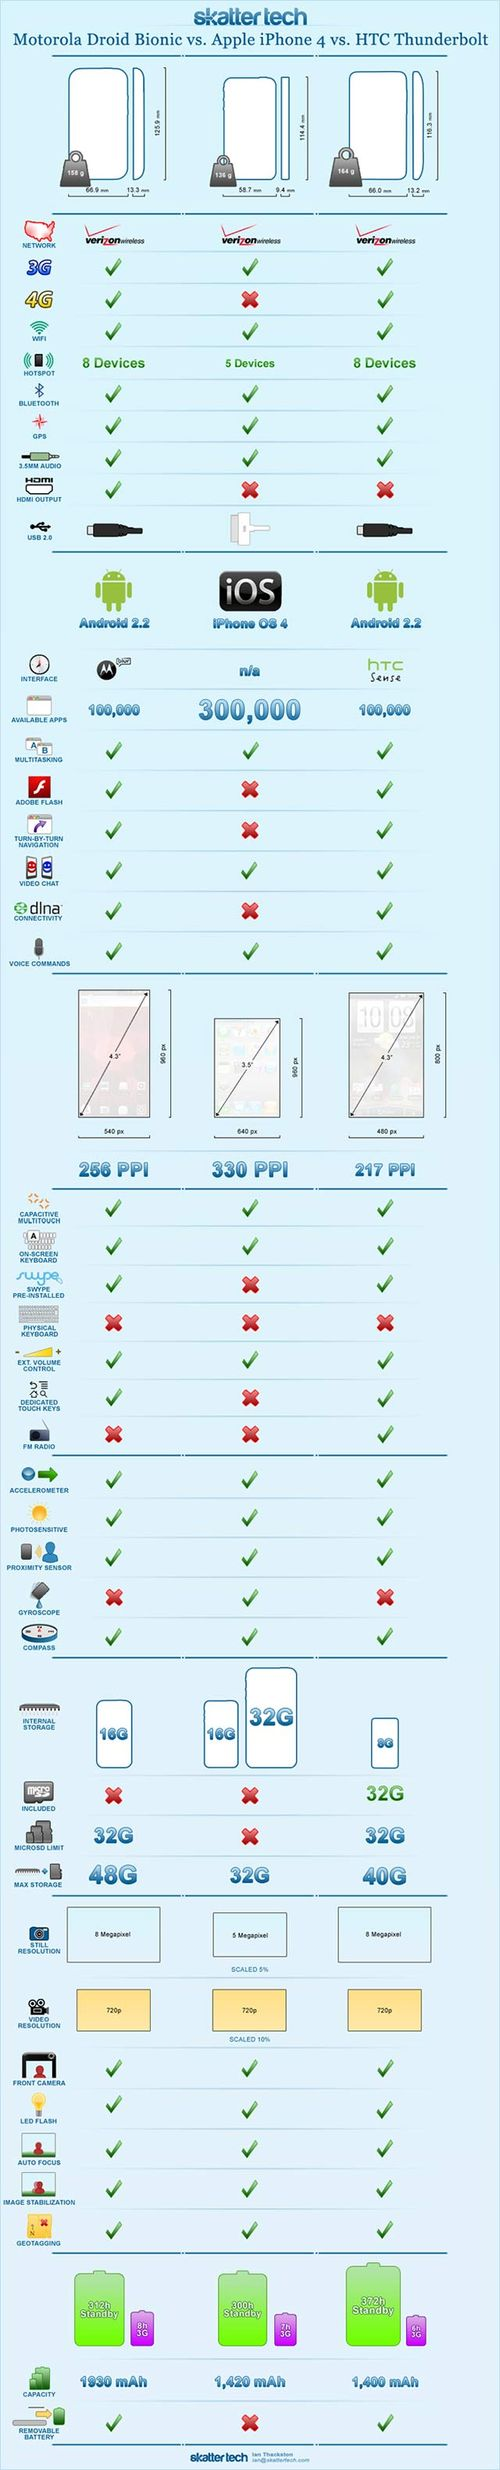 Infographic-droid-bionic-vs-iphone-4-vs-thunderbolt-small